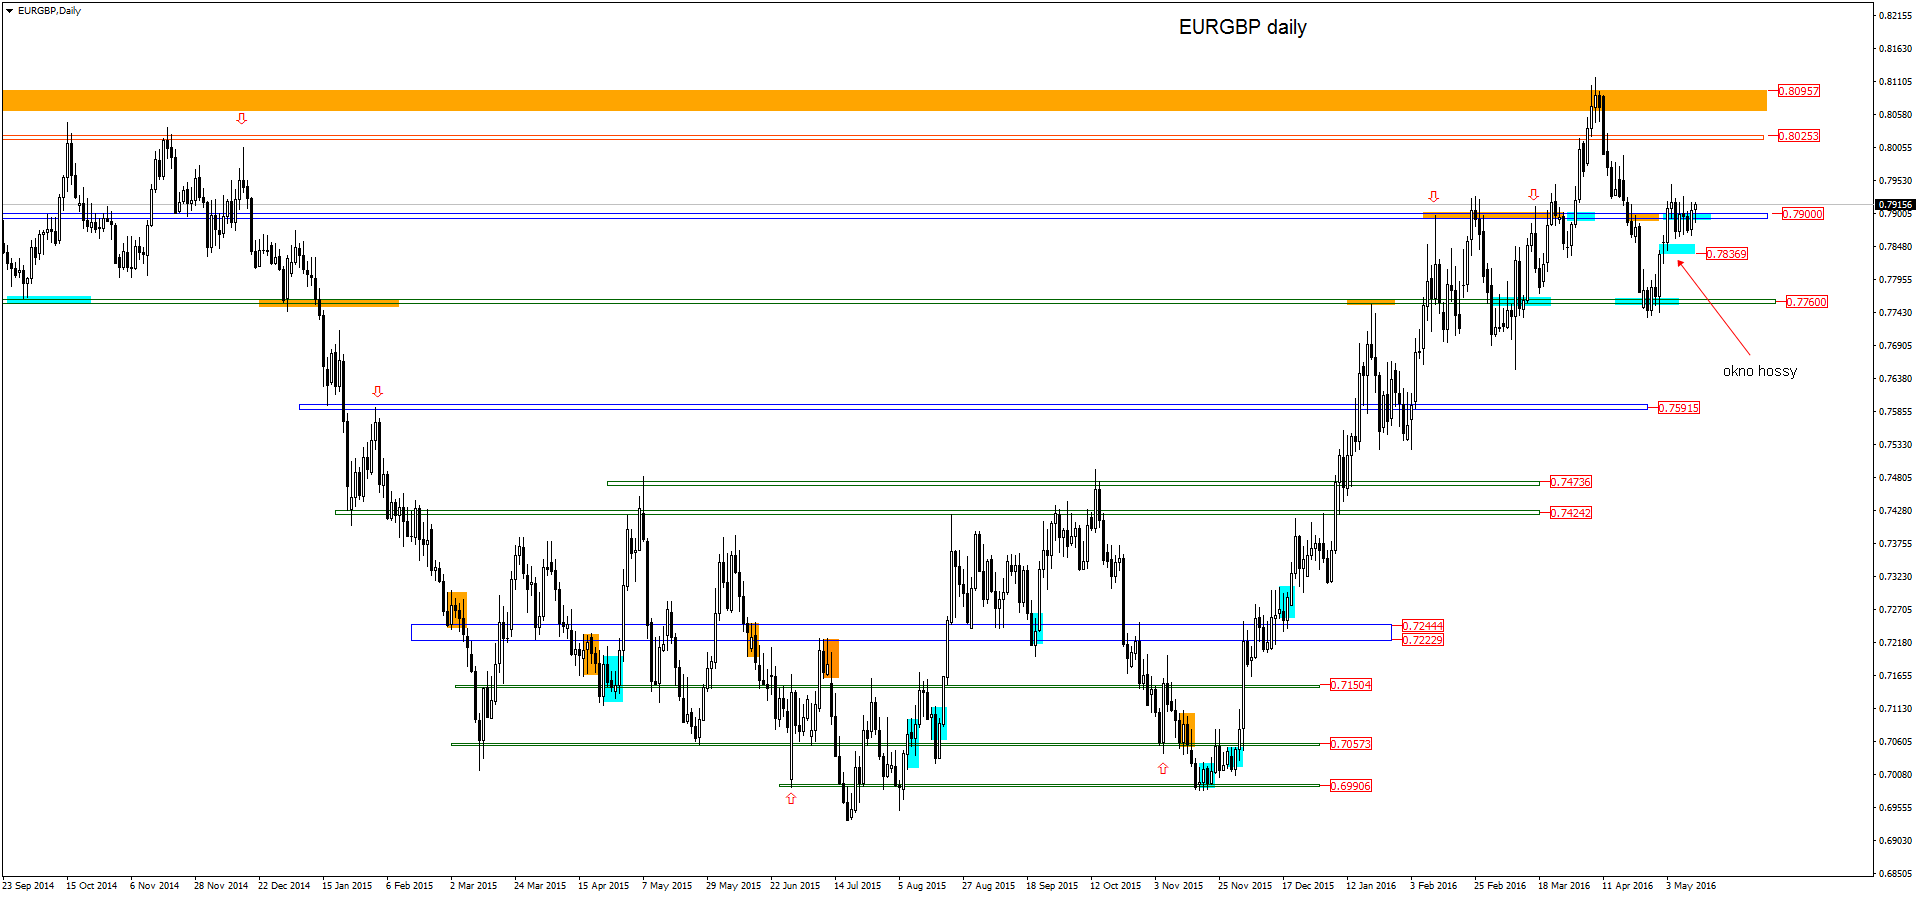 FXMAG forex eurgbp - szeroka analiza price action 4